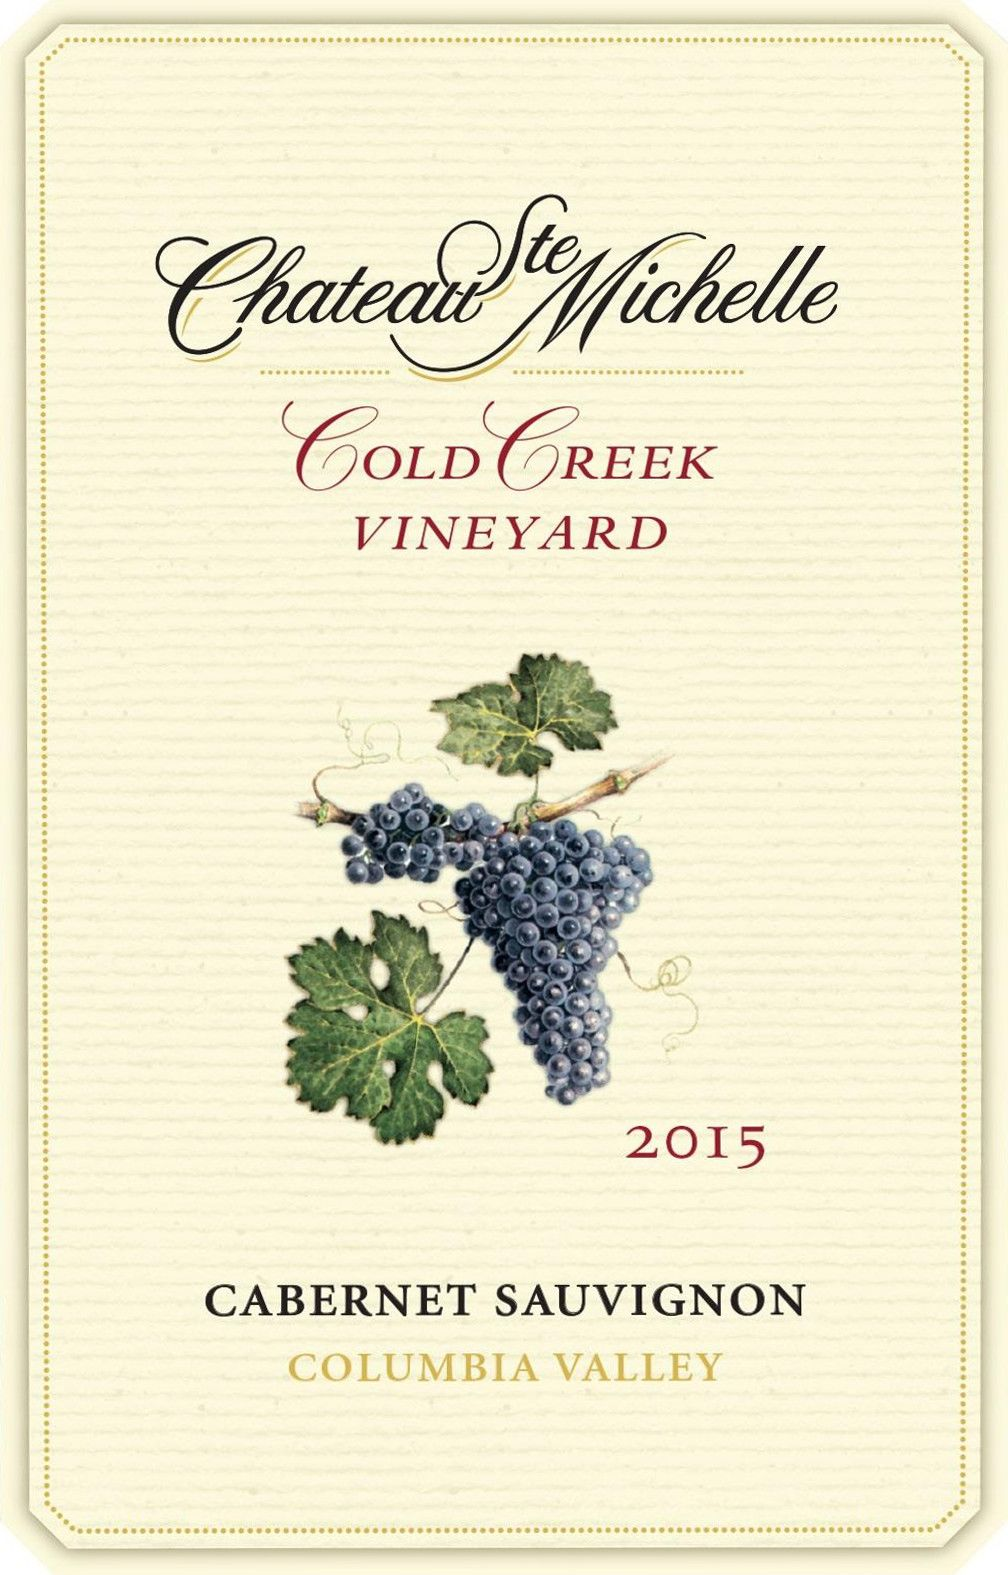 Chateau Ste. Michelle Cold Creek Vineyard Cabernet Sauvignon 2015 Front Label